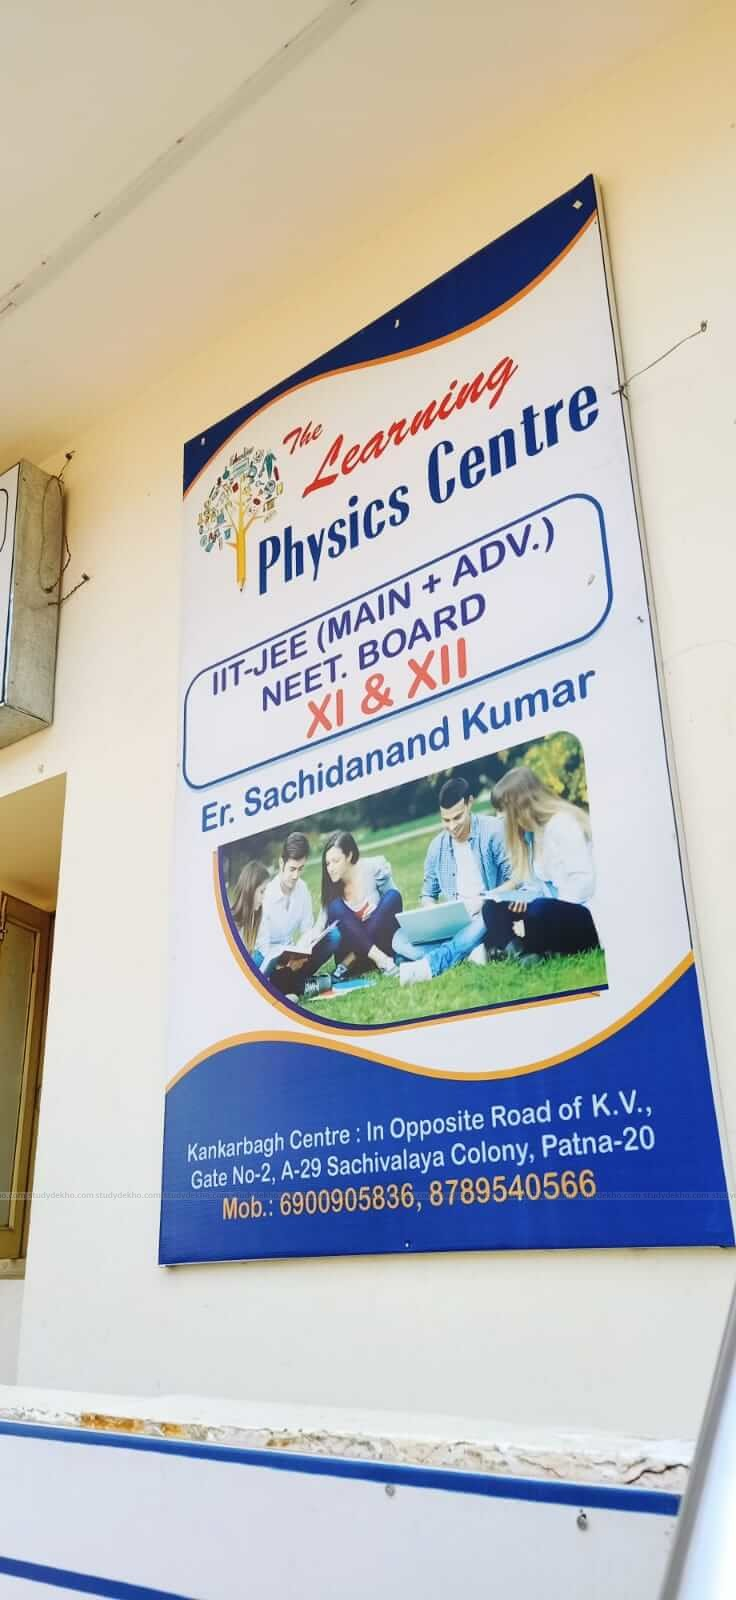 The Learning Physics Centre Logo